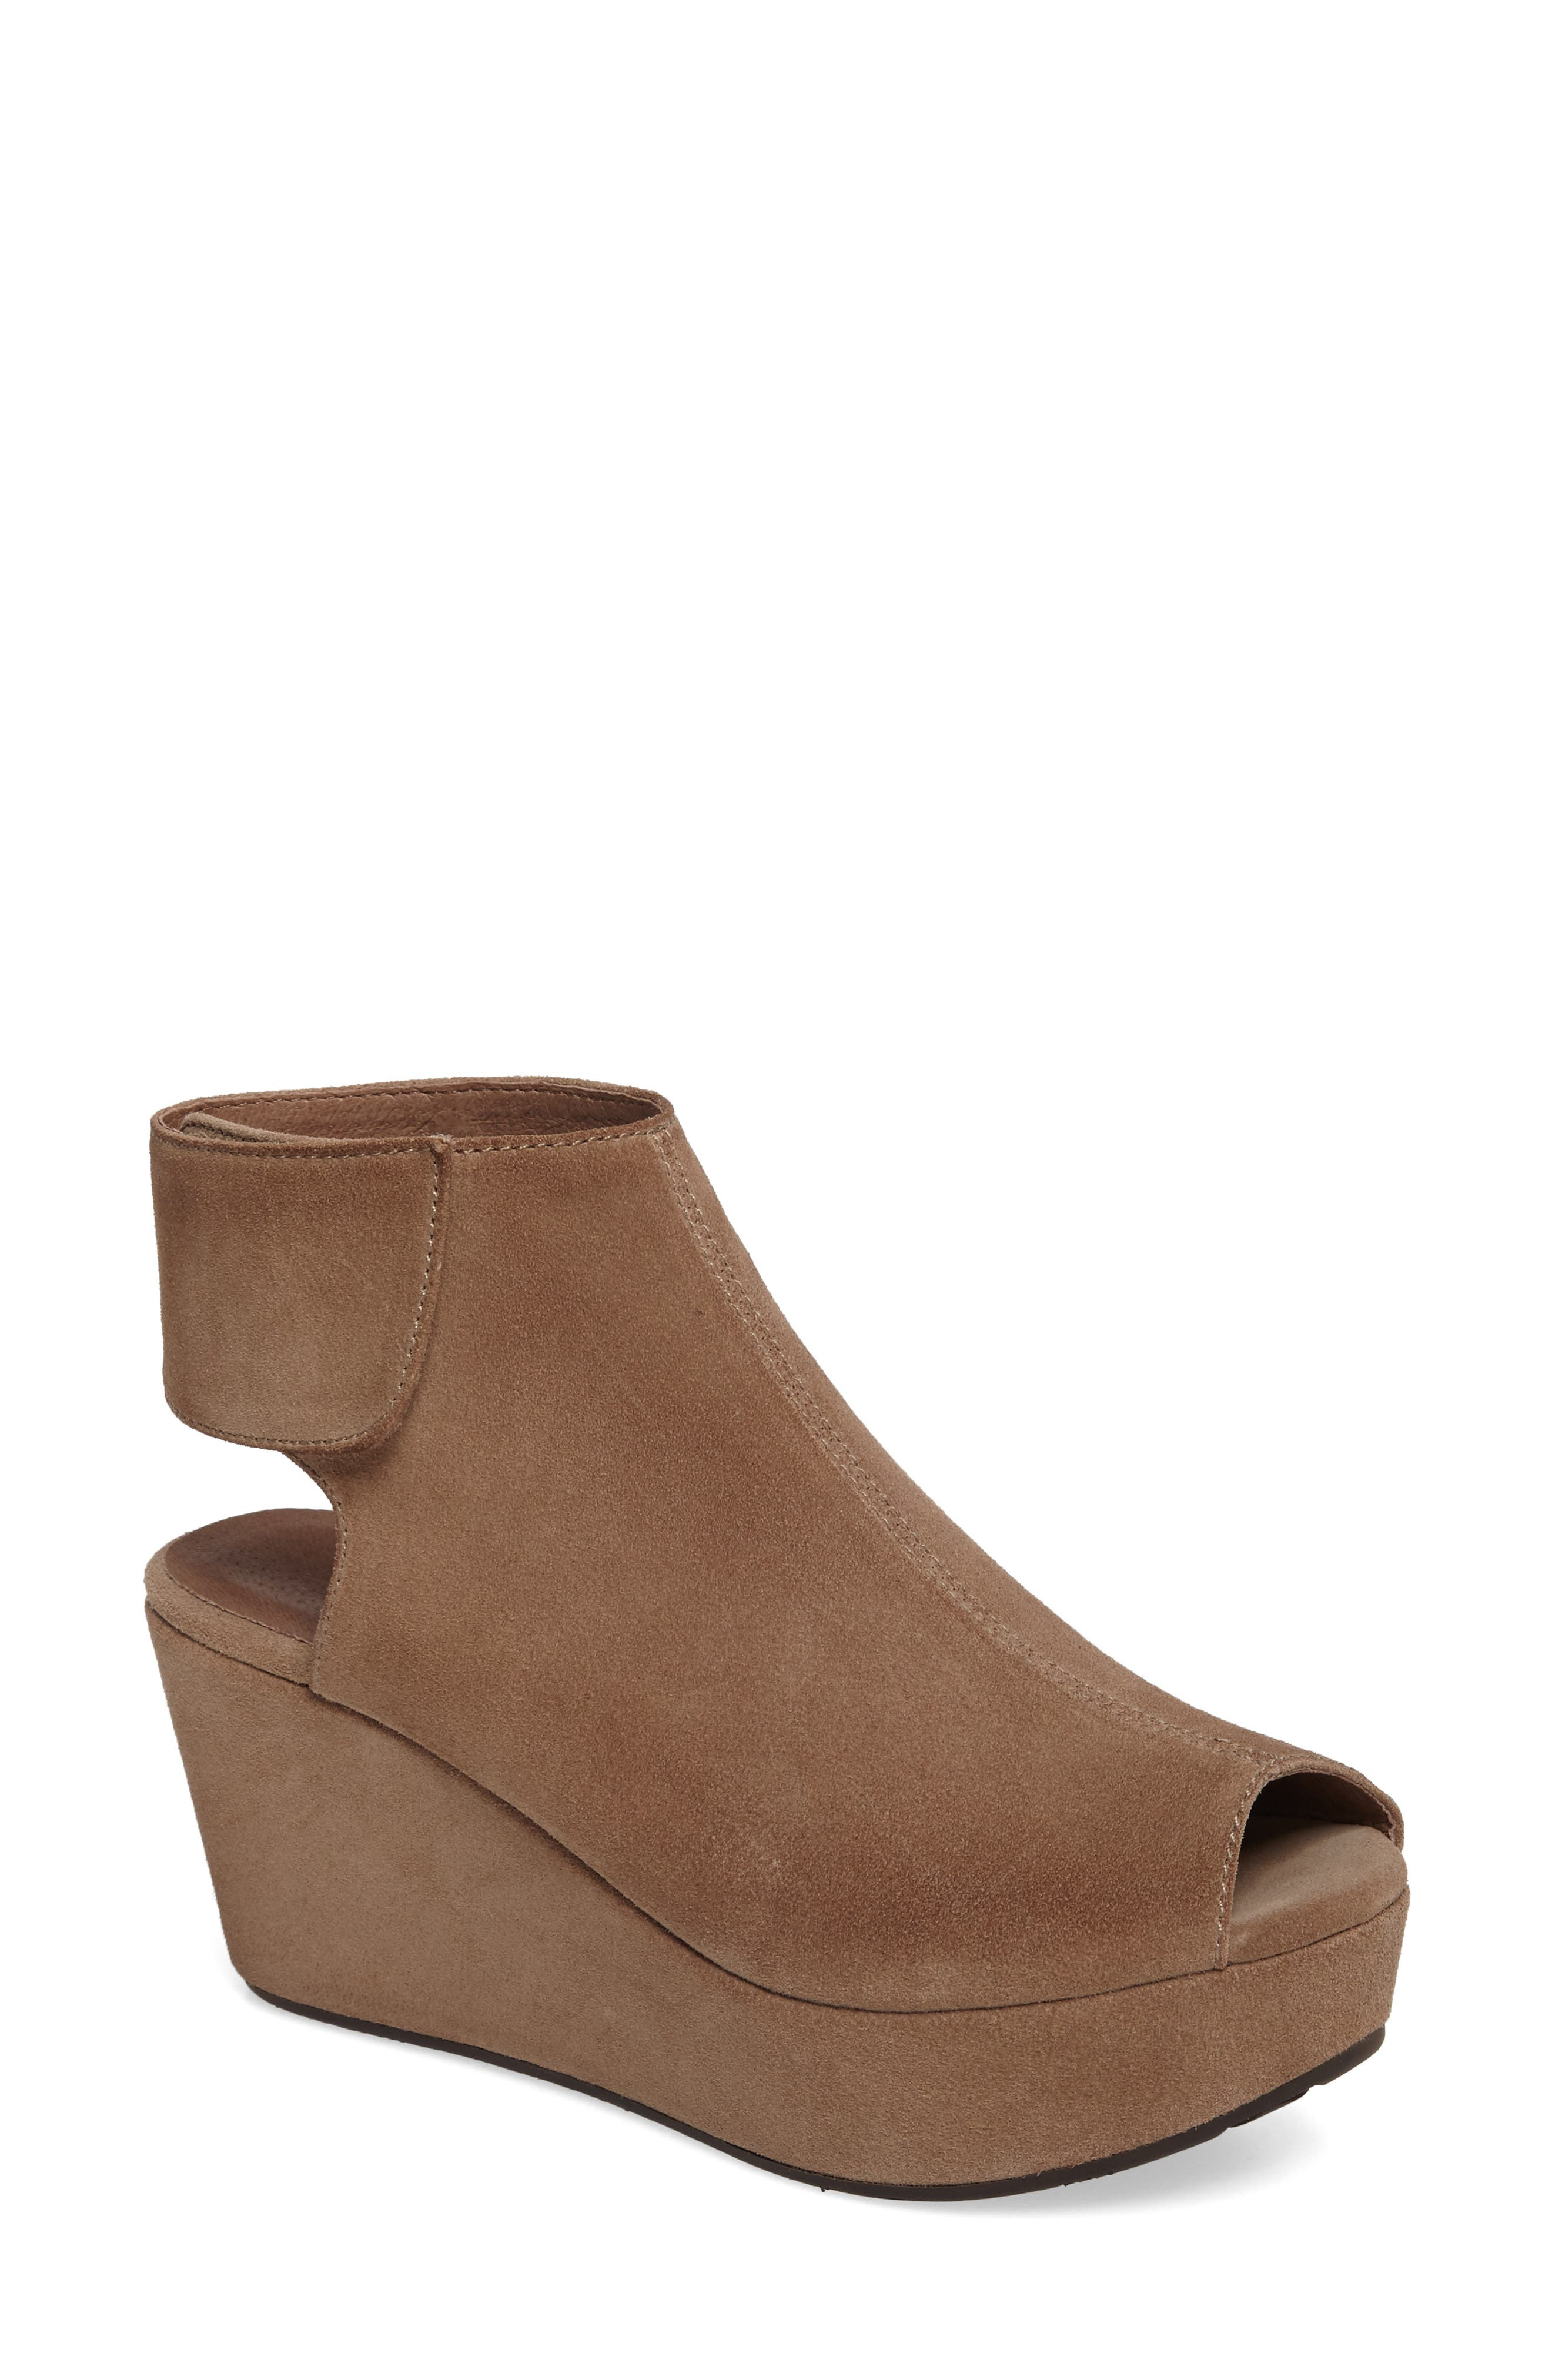 Cutout Wedge Sandal,                             Main thumbnail 1, color,                             Taupe Suede